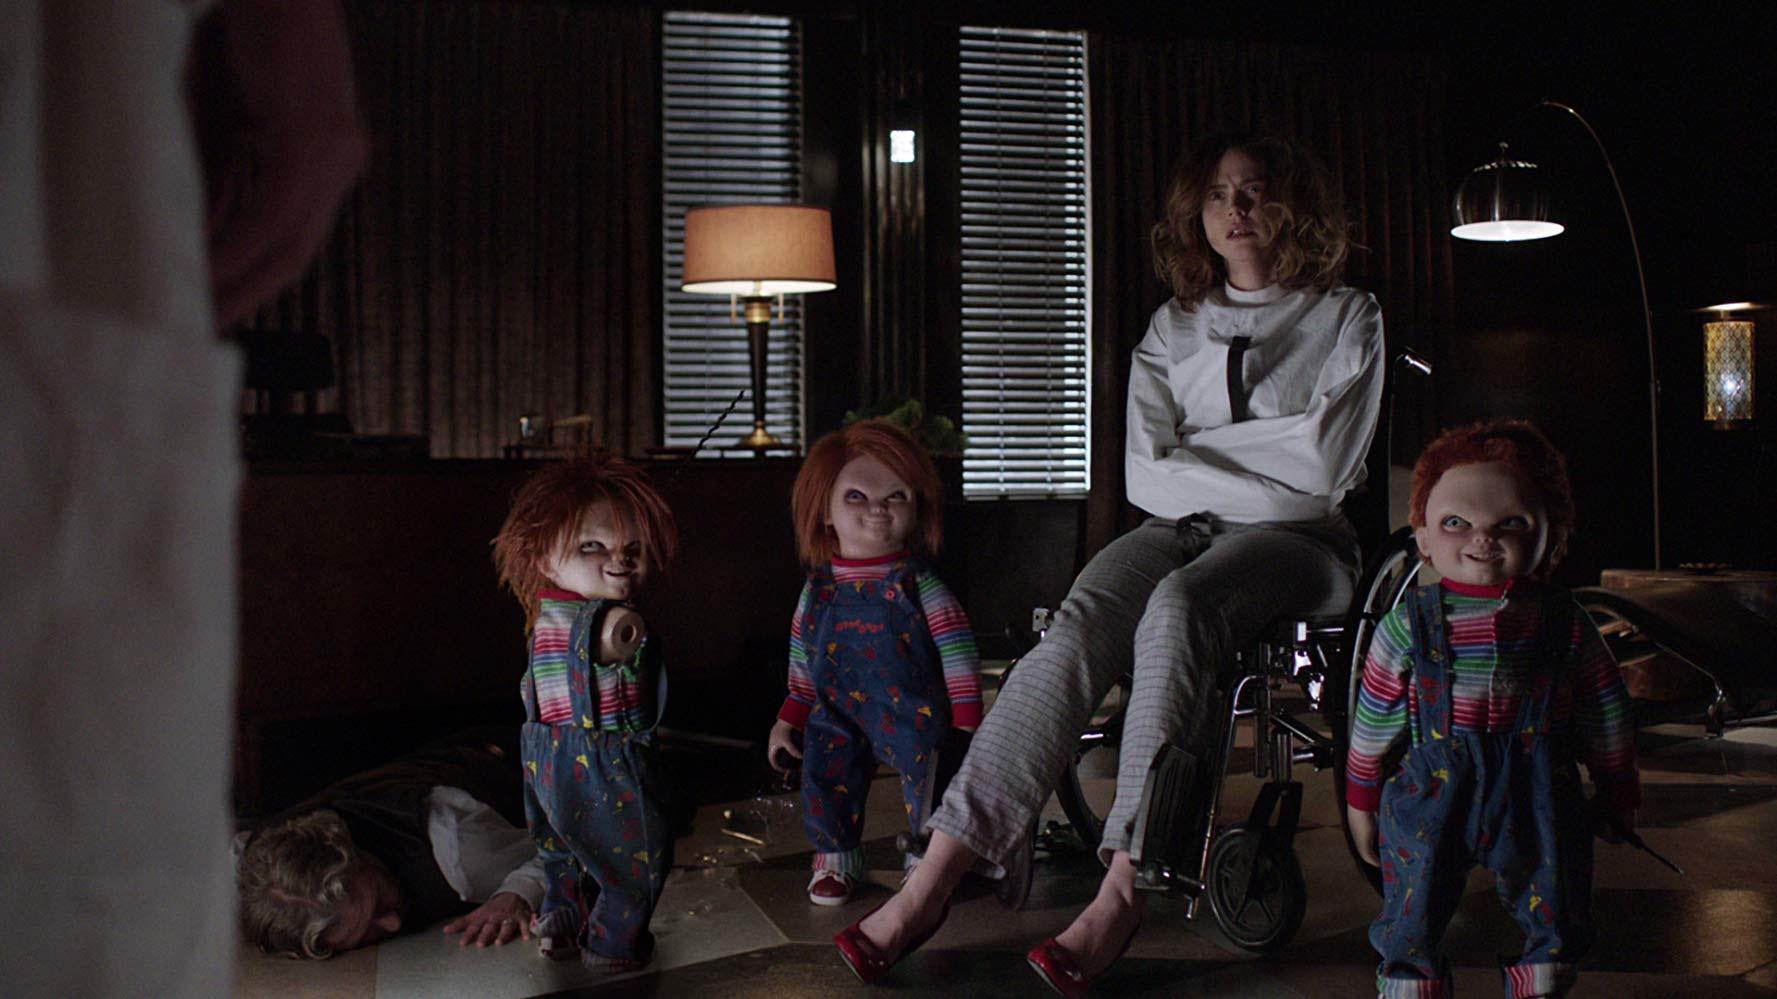 An incarcerated Fiona Dourif surrounded by Chucky dolls in Cult of Chucky (2017)